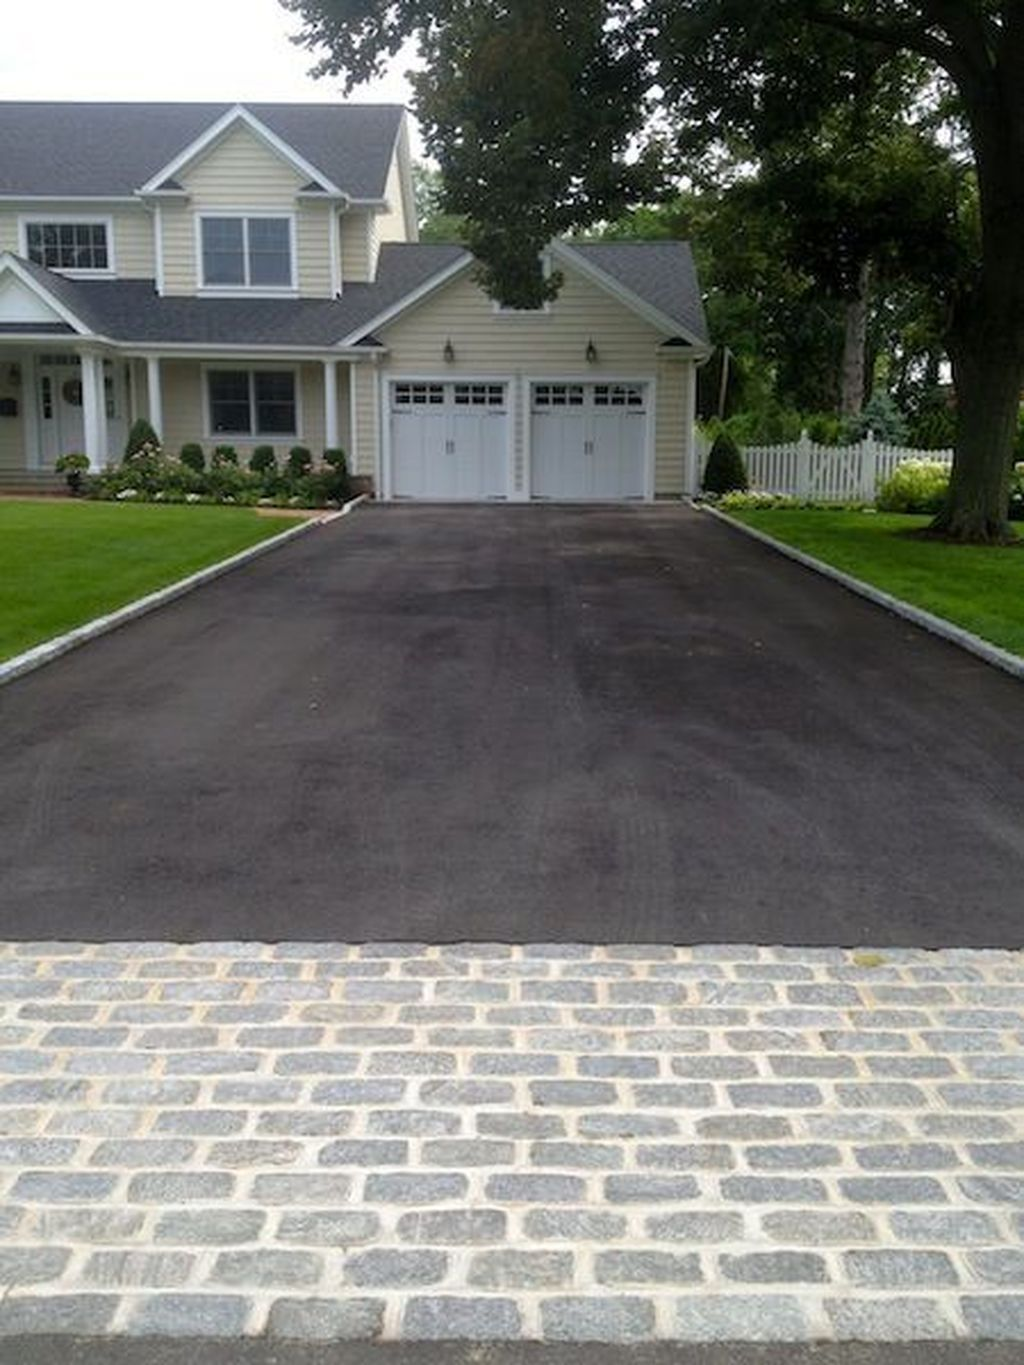 35 Fabulous Driveway Landscaping Design Ideas For Your Home To Try